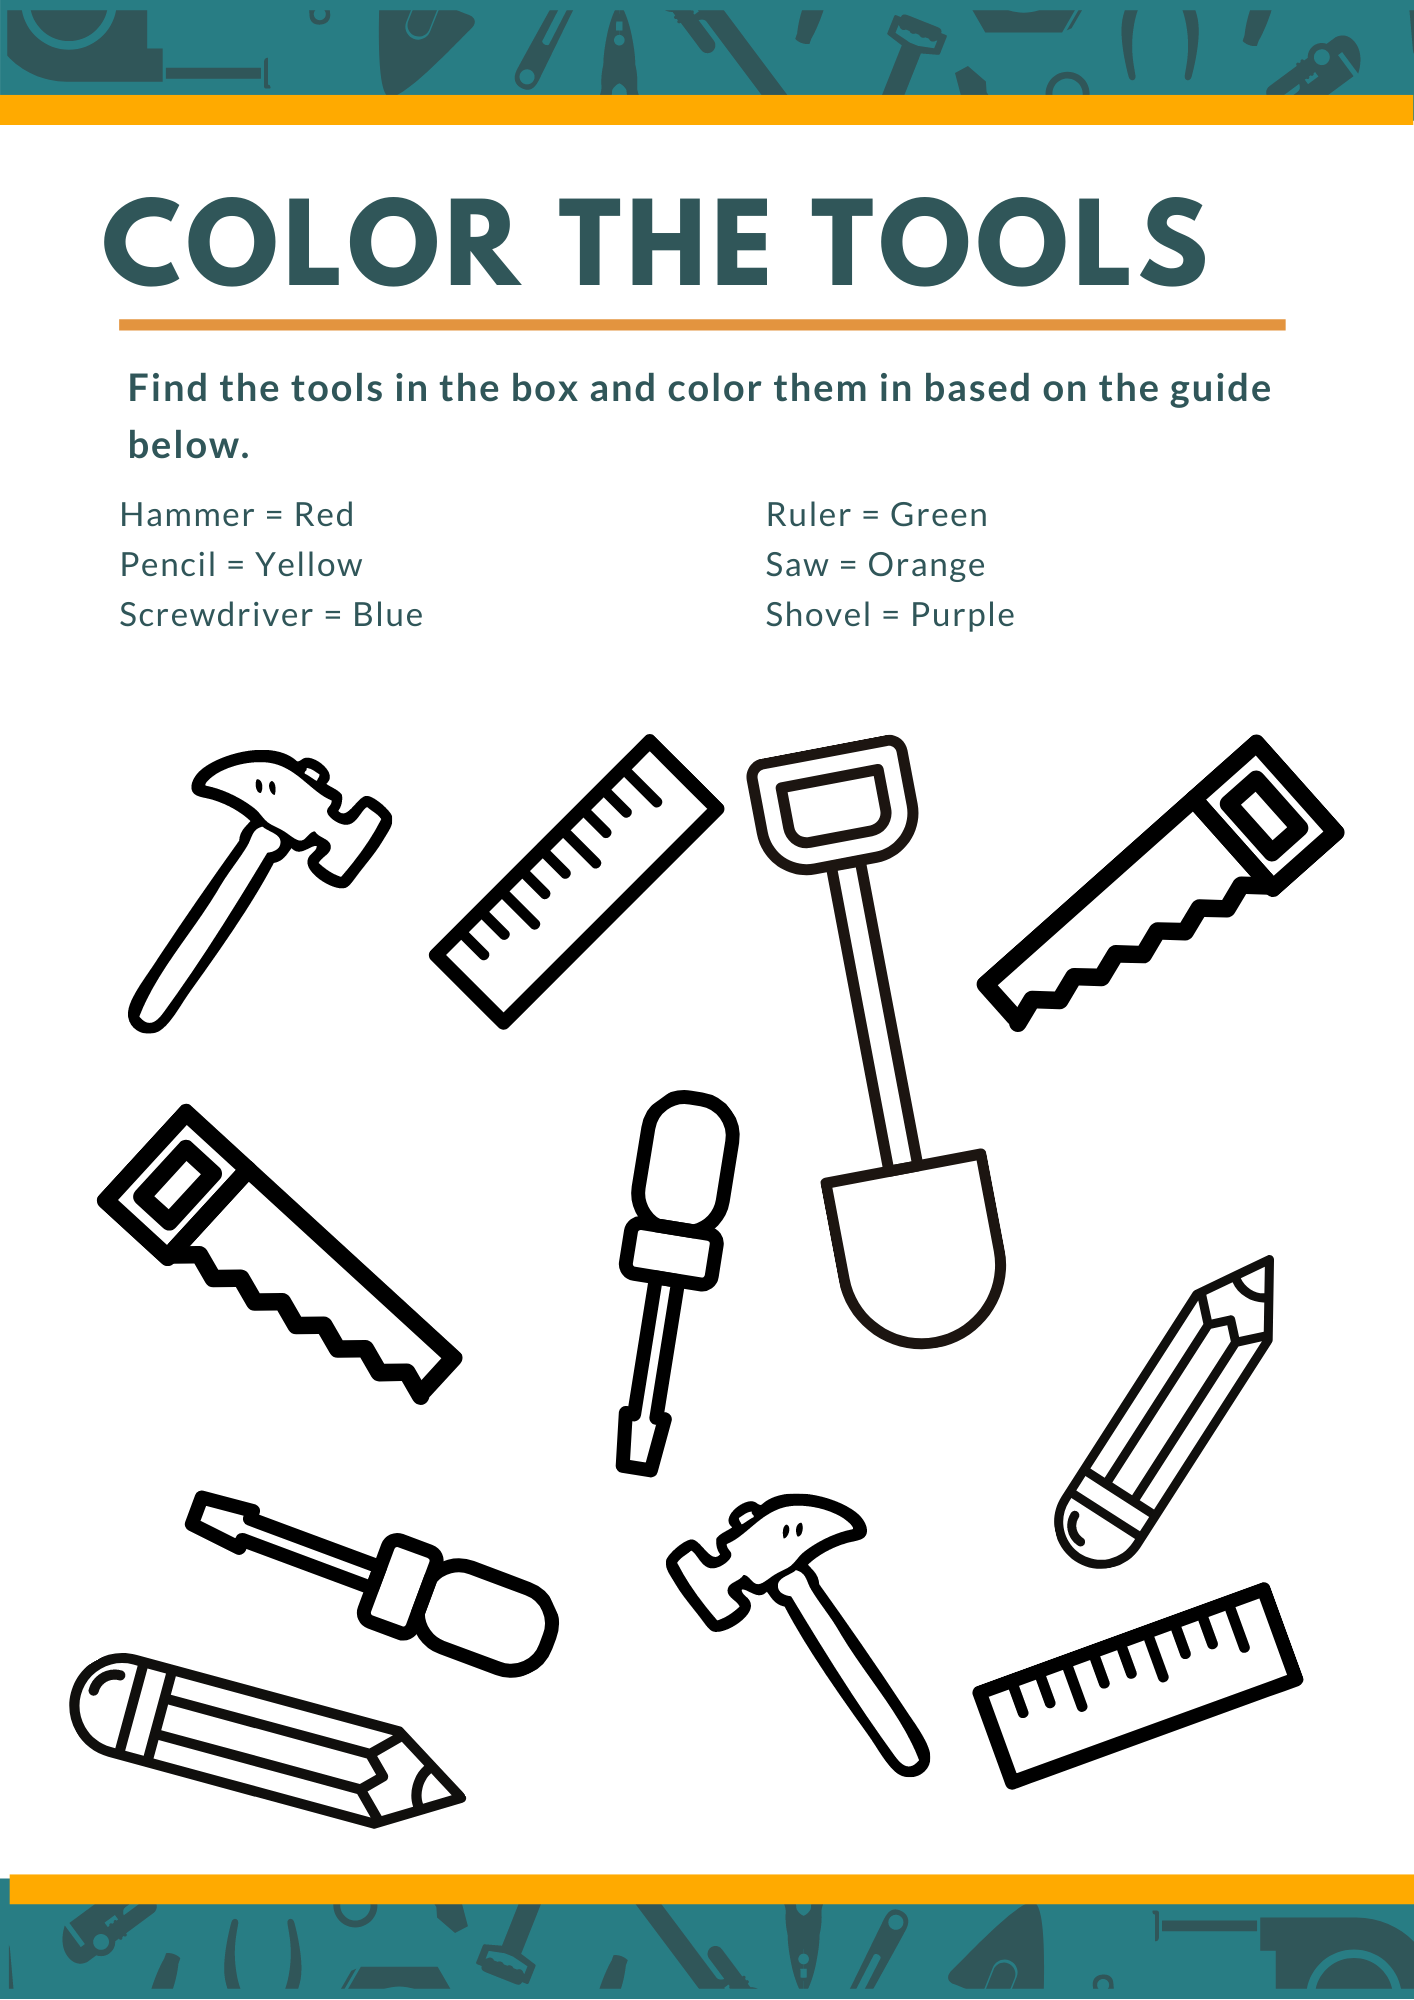 color-the-tools-activity-sheet.png